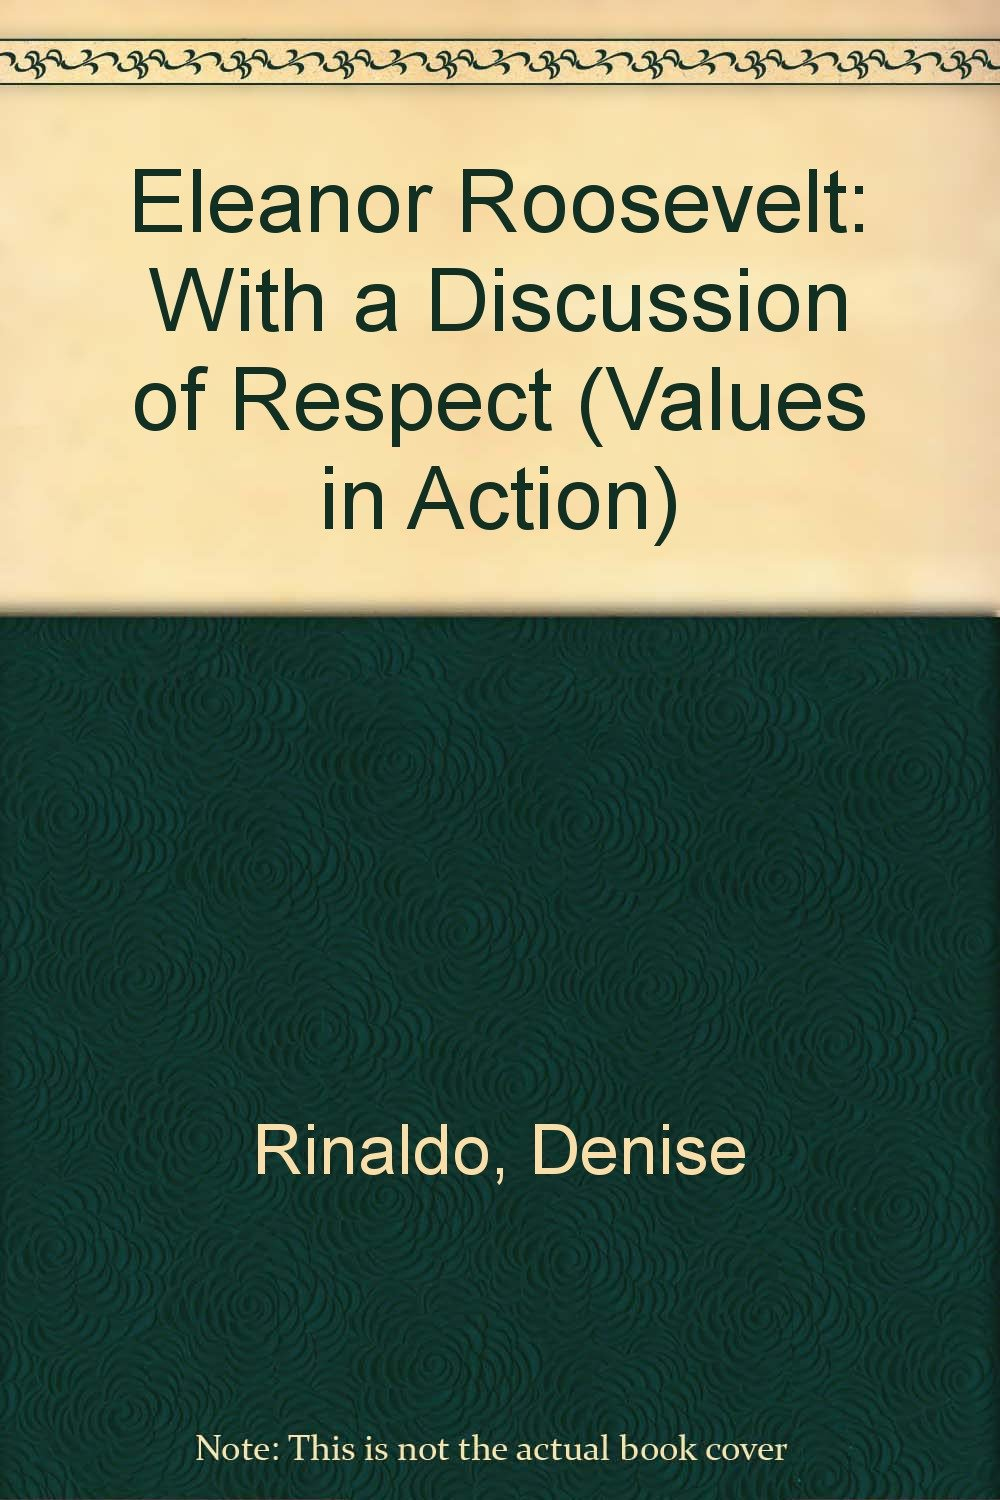 Eleanor Roosevelt: With a Discussion of Respect (Values in Action) PDF